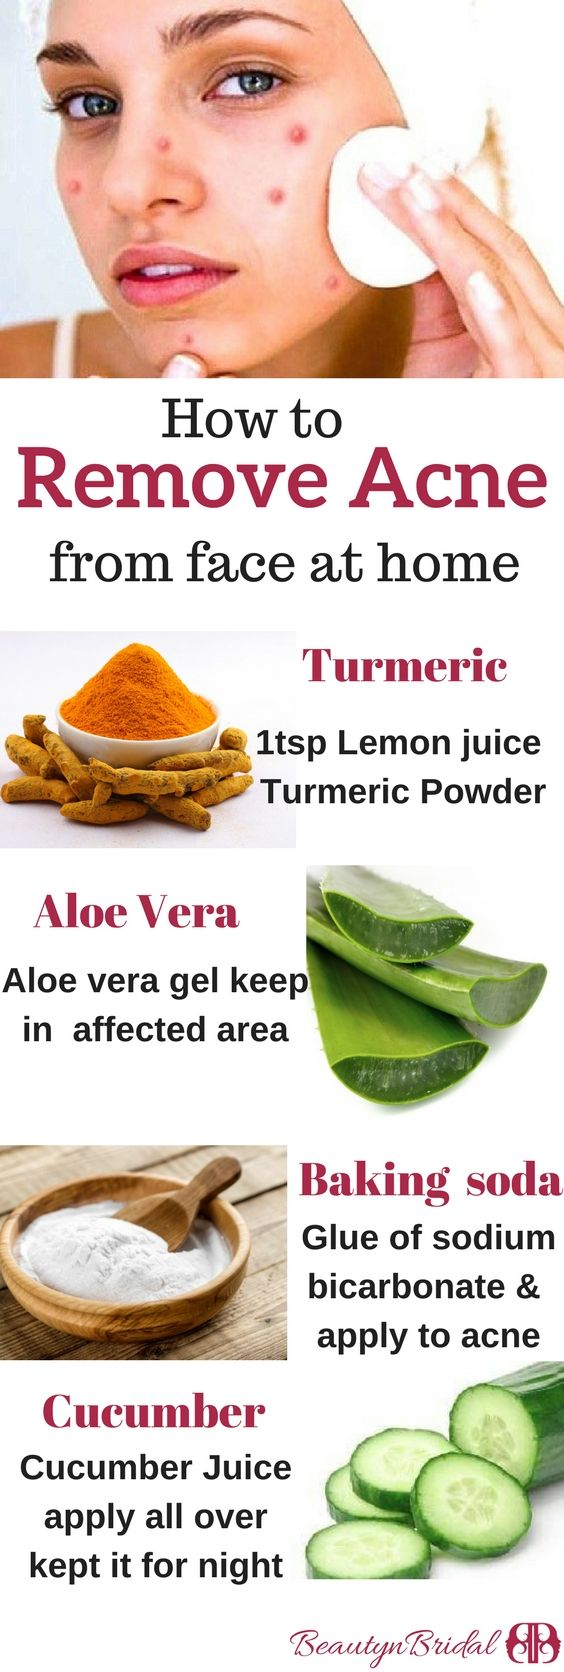 How to remove pimple marks from face remedies Pimples scars Dark spots